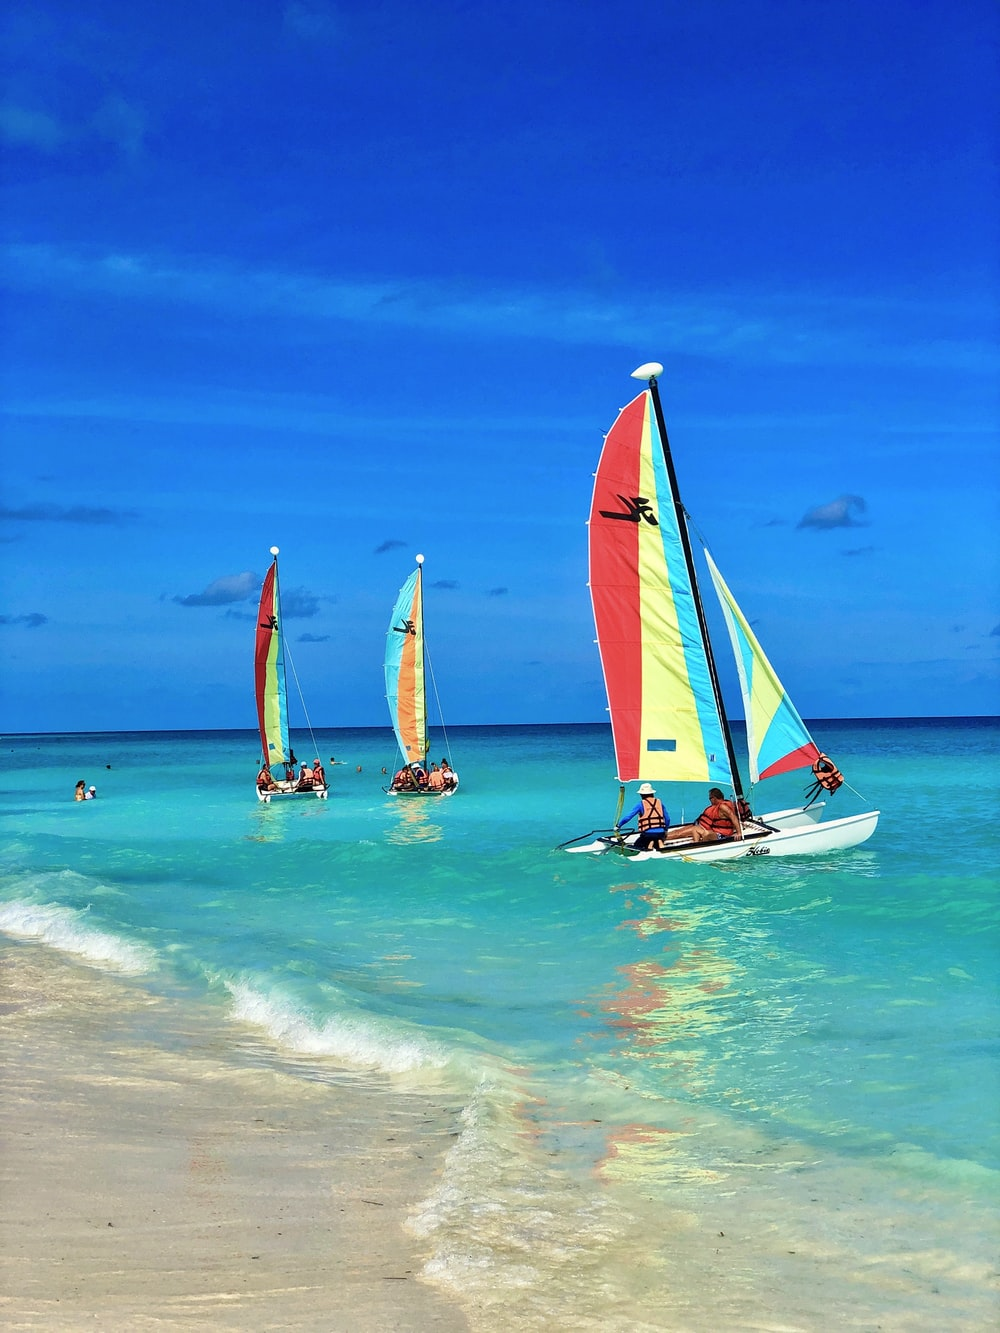 people riding on sail boat on sea during daytime